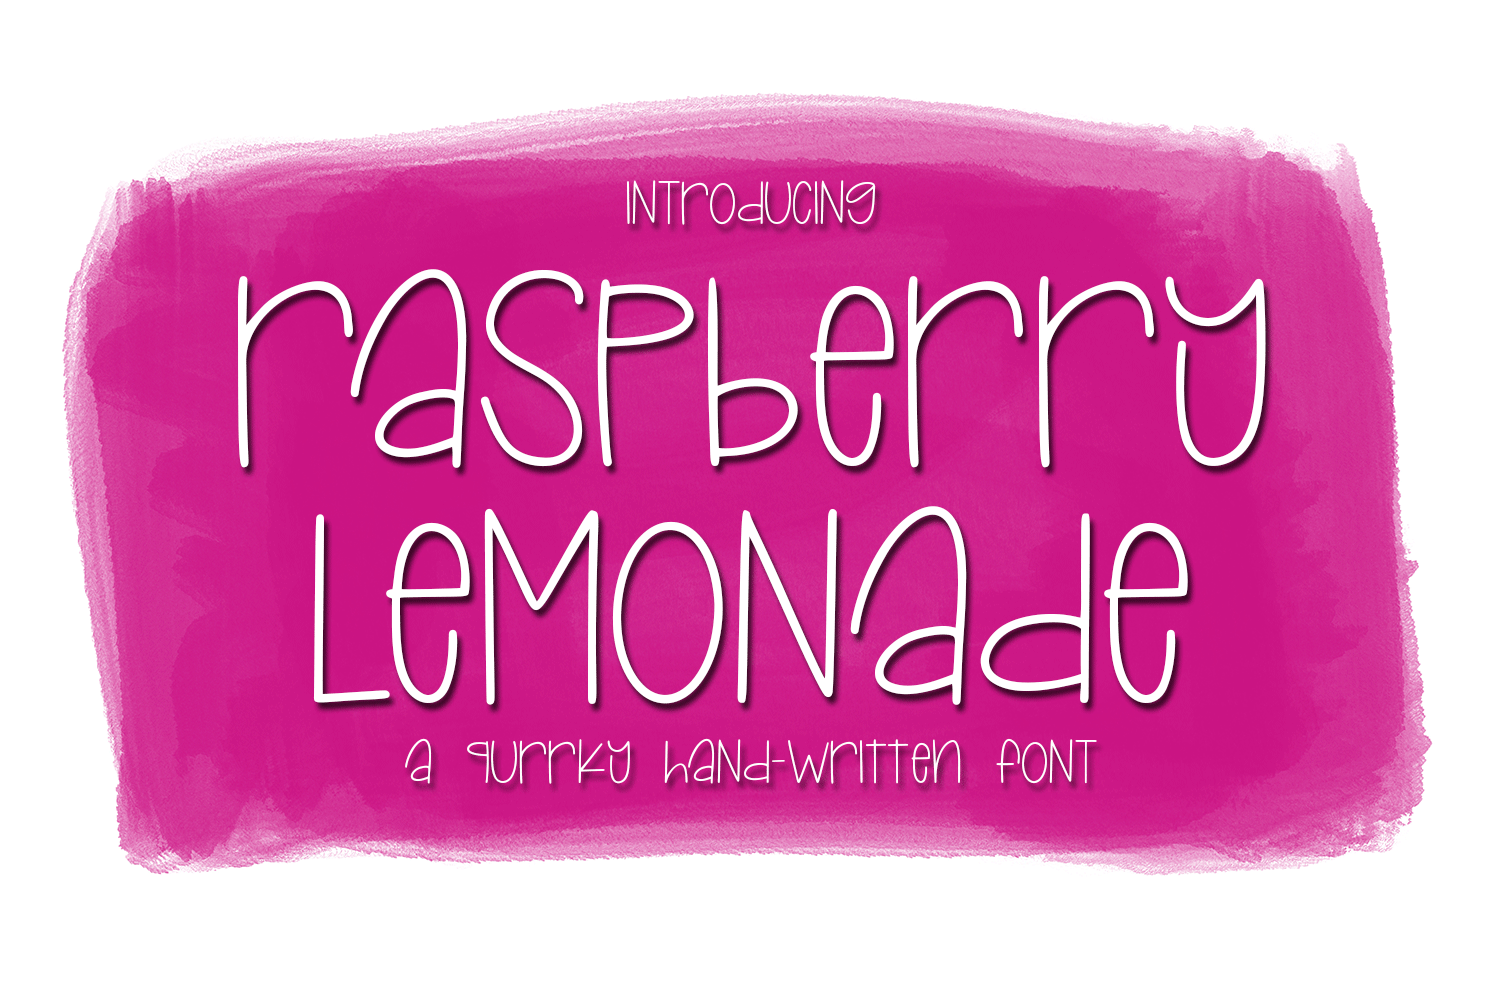 Raspberry Lemonade - A Quirky Hand-Written Font example image 1